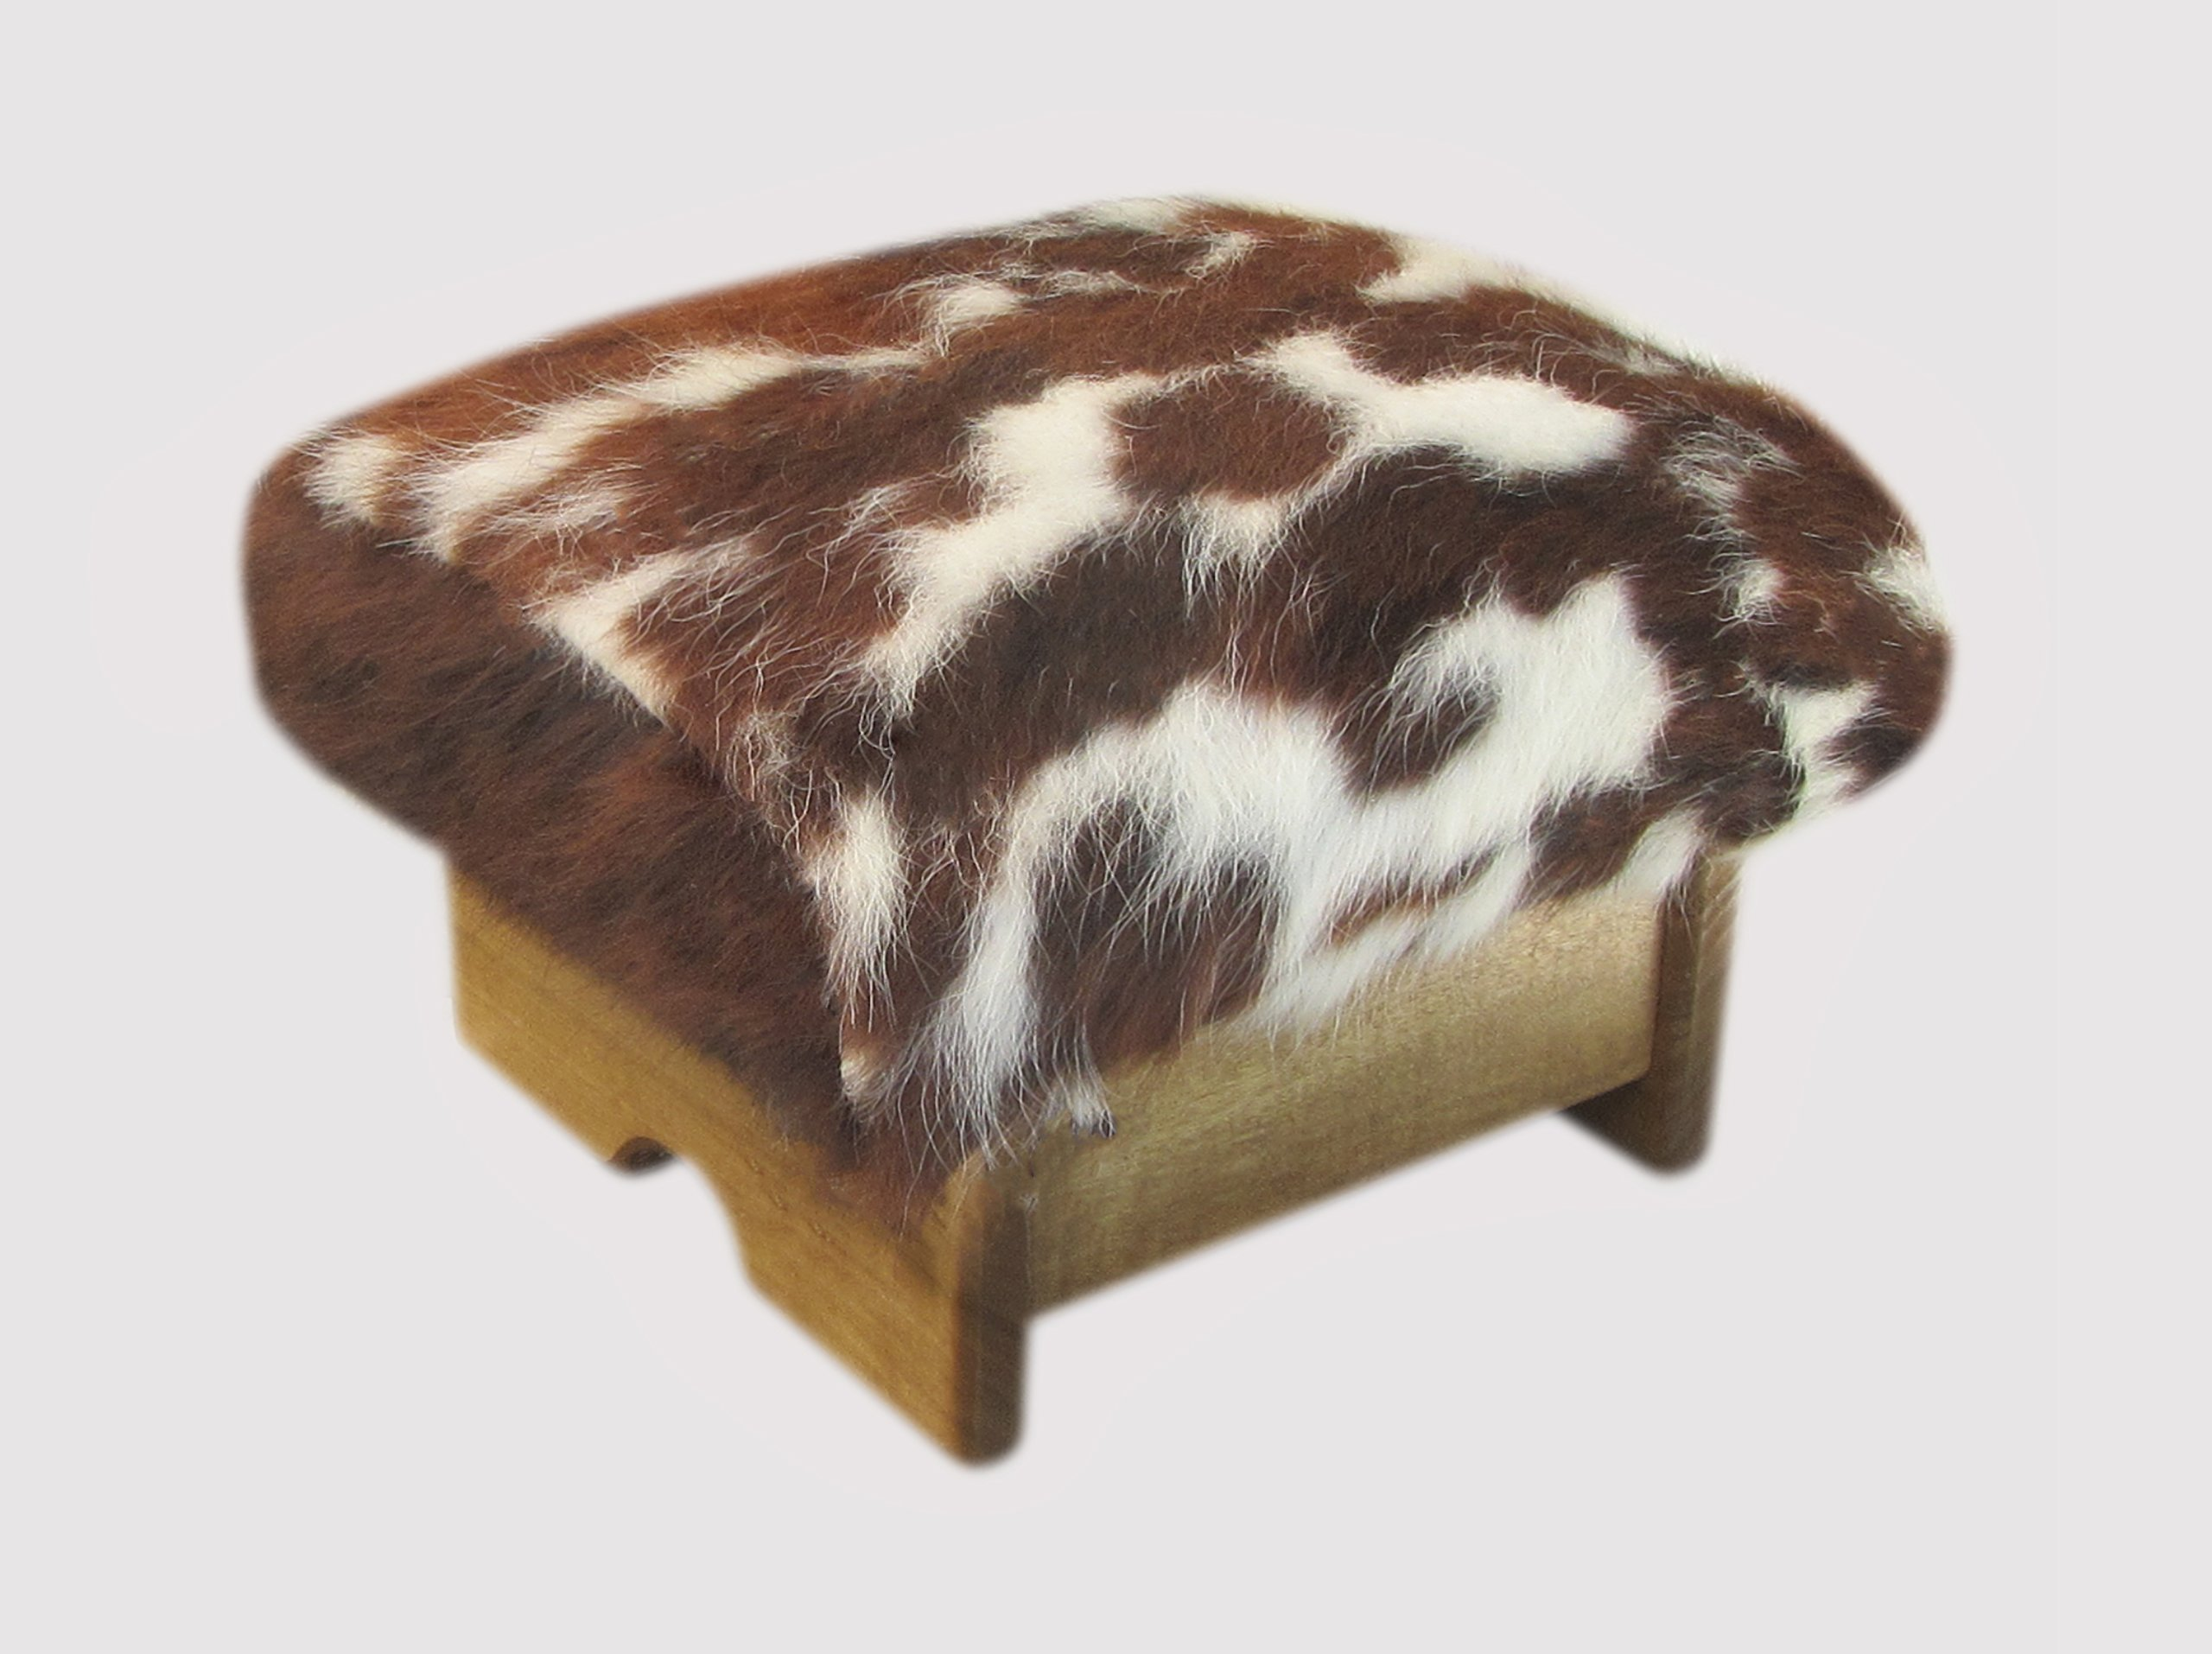 Mini Padded Foot Stool: Cowhide, 7'' Tall (Made in the USA) (Maple Stain)